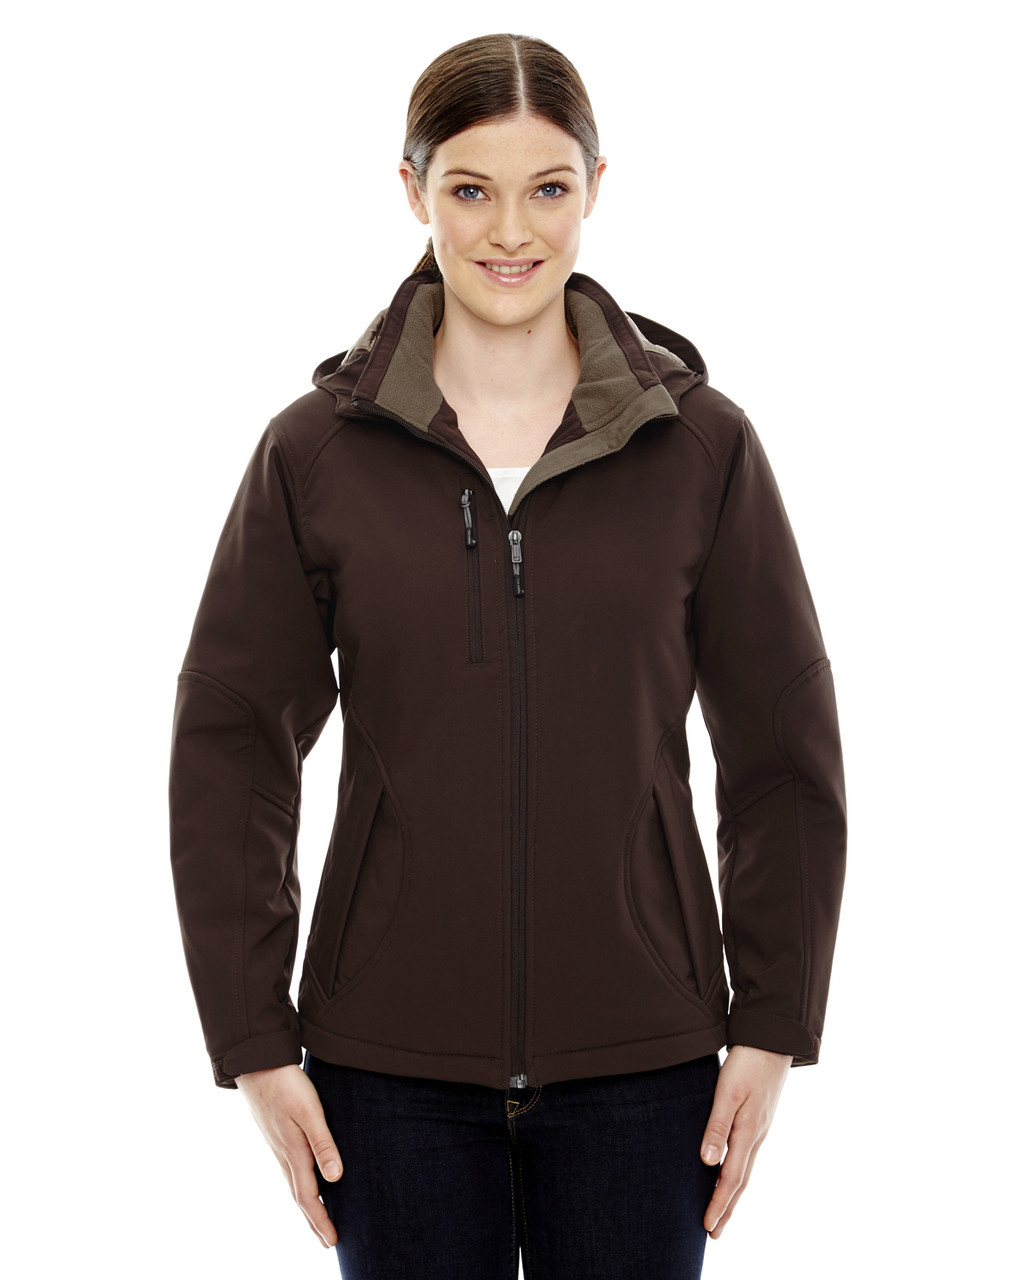 Dark Chocolate 78080 North End Ladies' Insulated Soft Shell Jacket With Detachable Hood | Blankclothing.ca